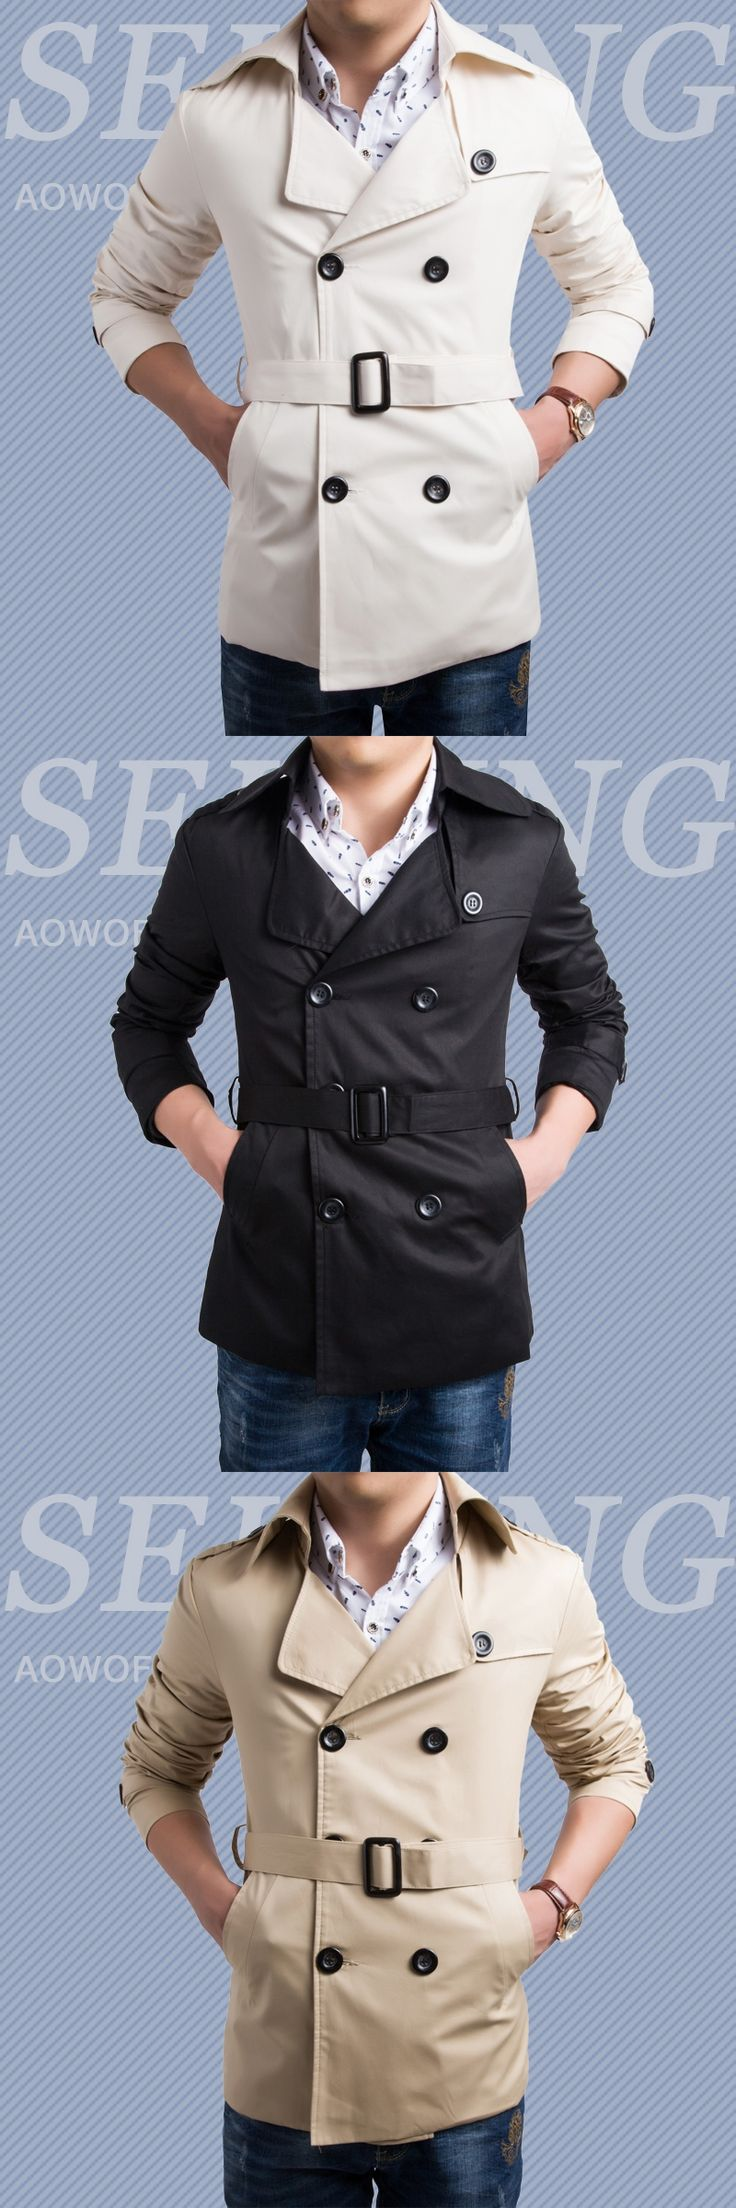 Men's Classic Elegant Trench Coat Button Double Breasted Male Windbreaker Cotton Slim Fit Casual Manteau Homme Outwear